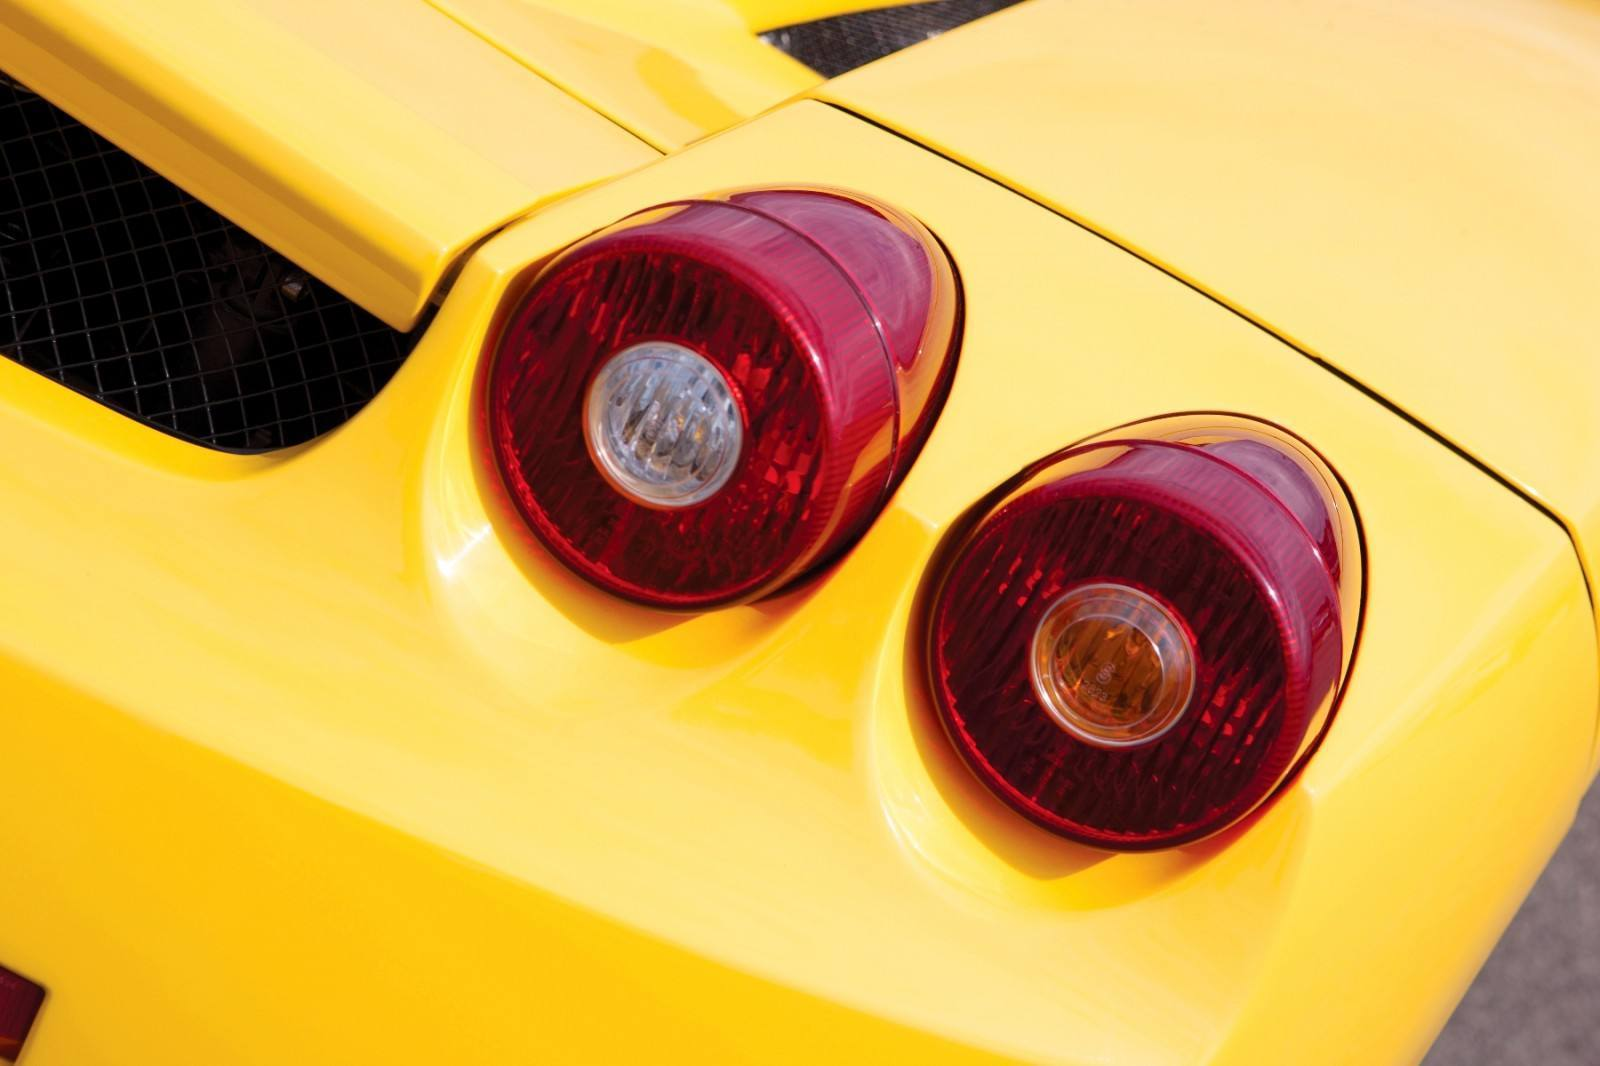 RM Monaco 2014 Highlights - 2003 Ferrari Enzo in Yellow over Black 15